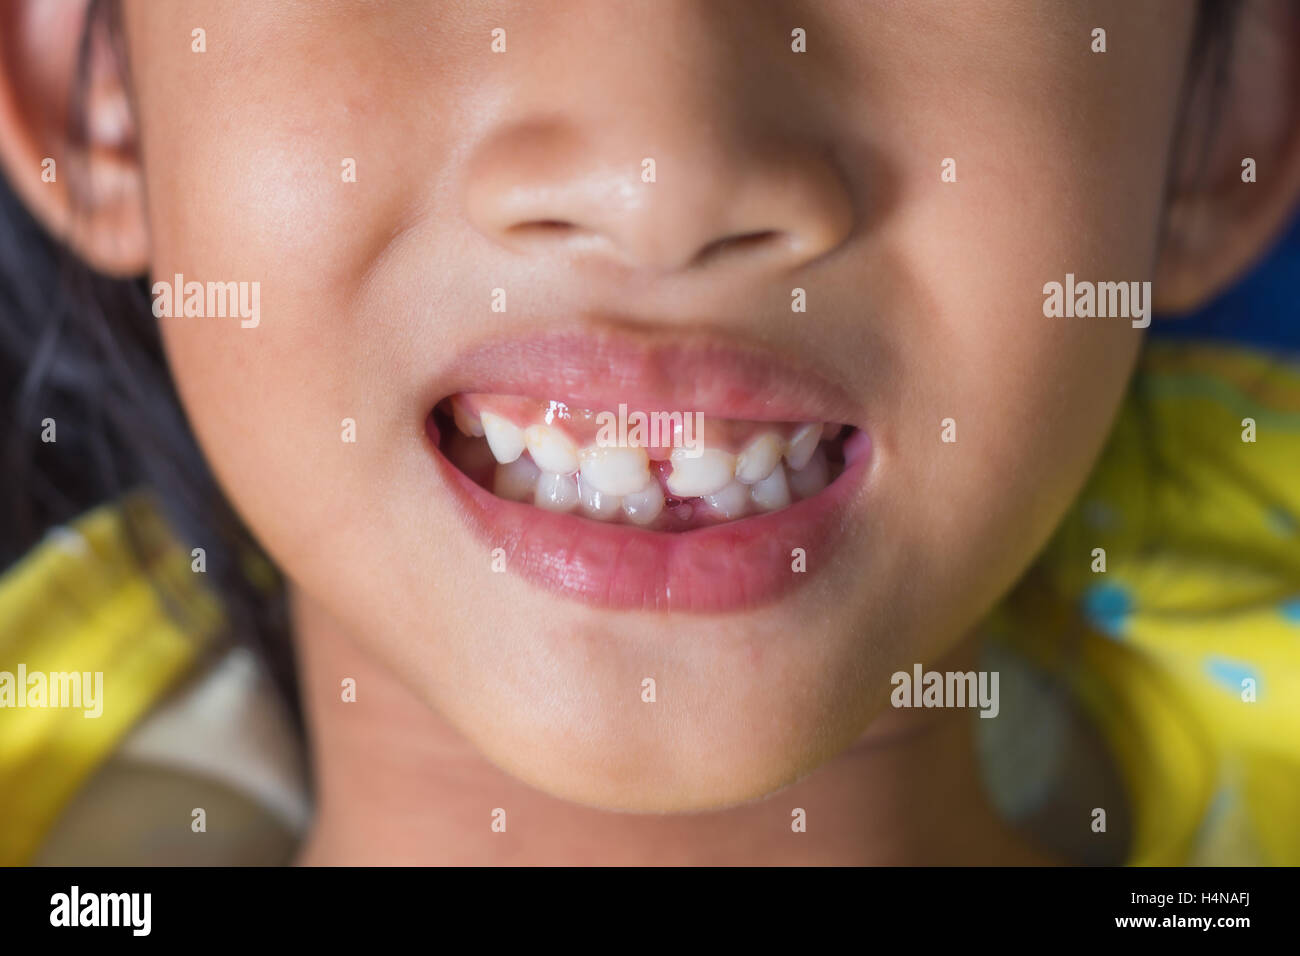 kid patient open mouth showing cavities. - Stock Image